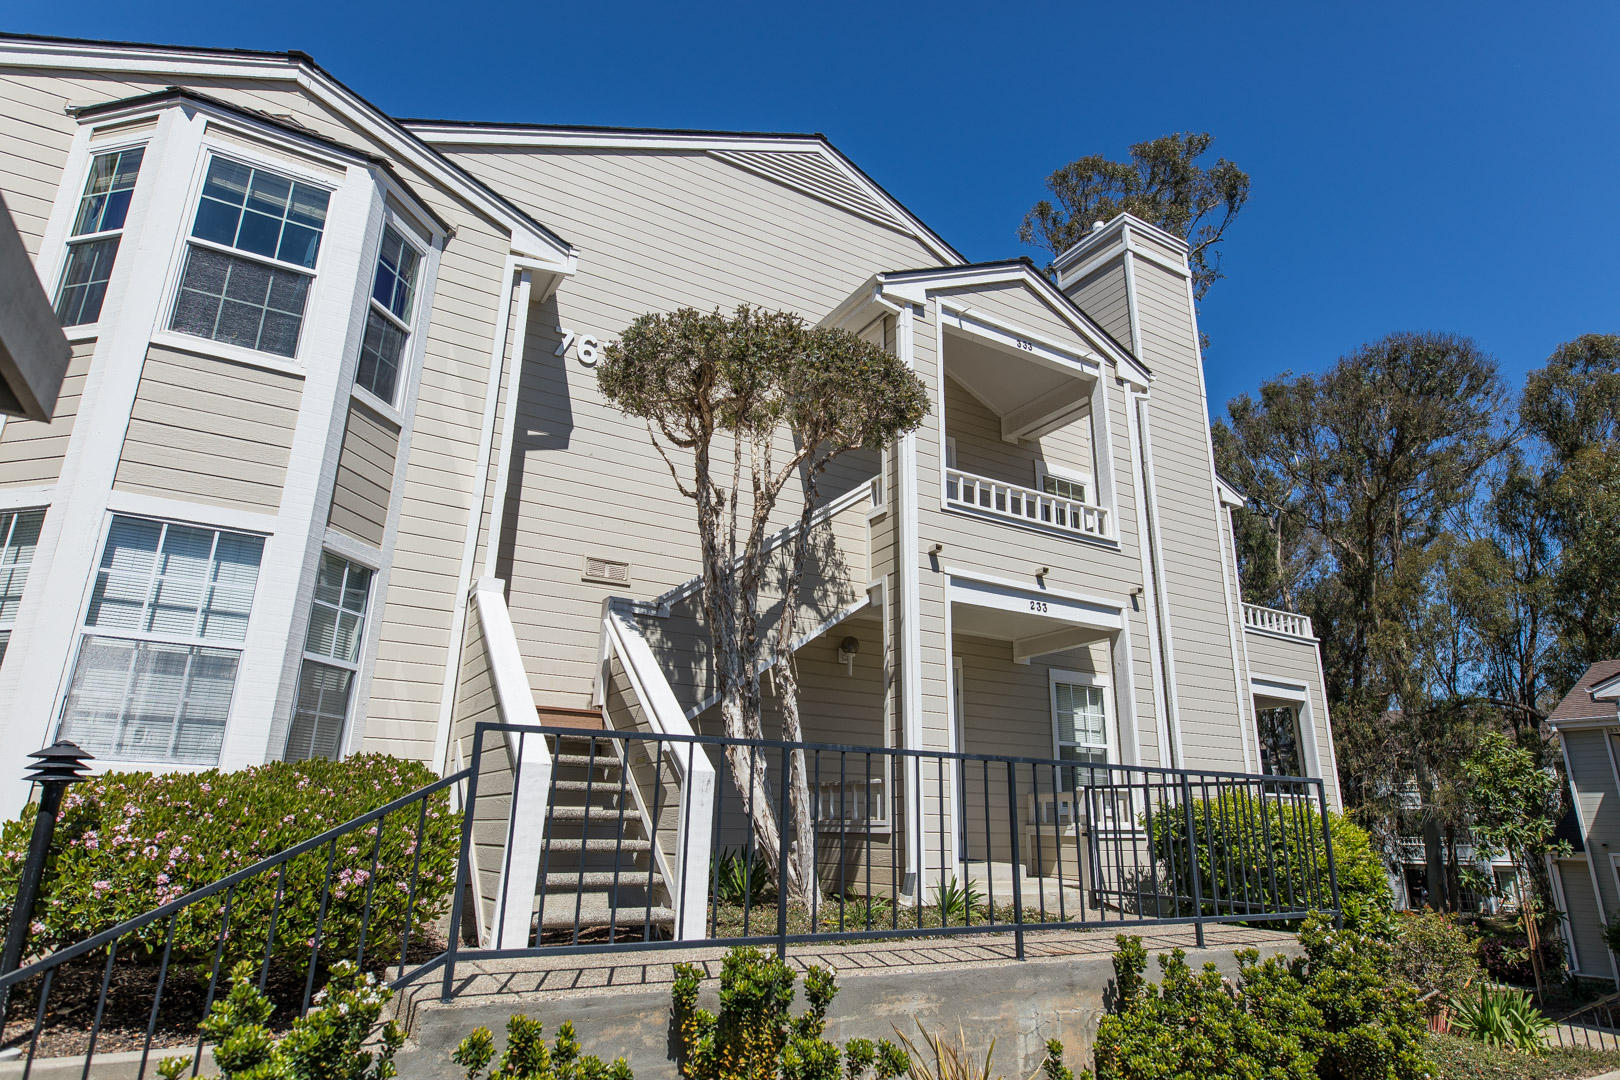 Property photo for 7628 Hollister Ave #333 Goleta, California 93117 - 17-989